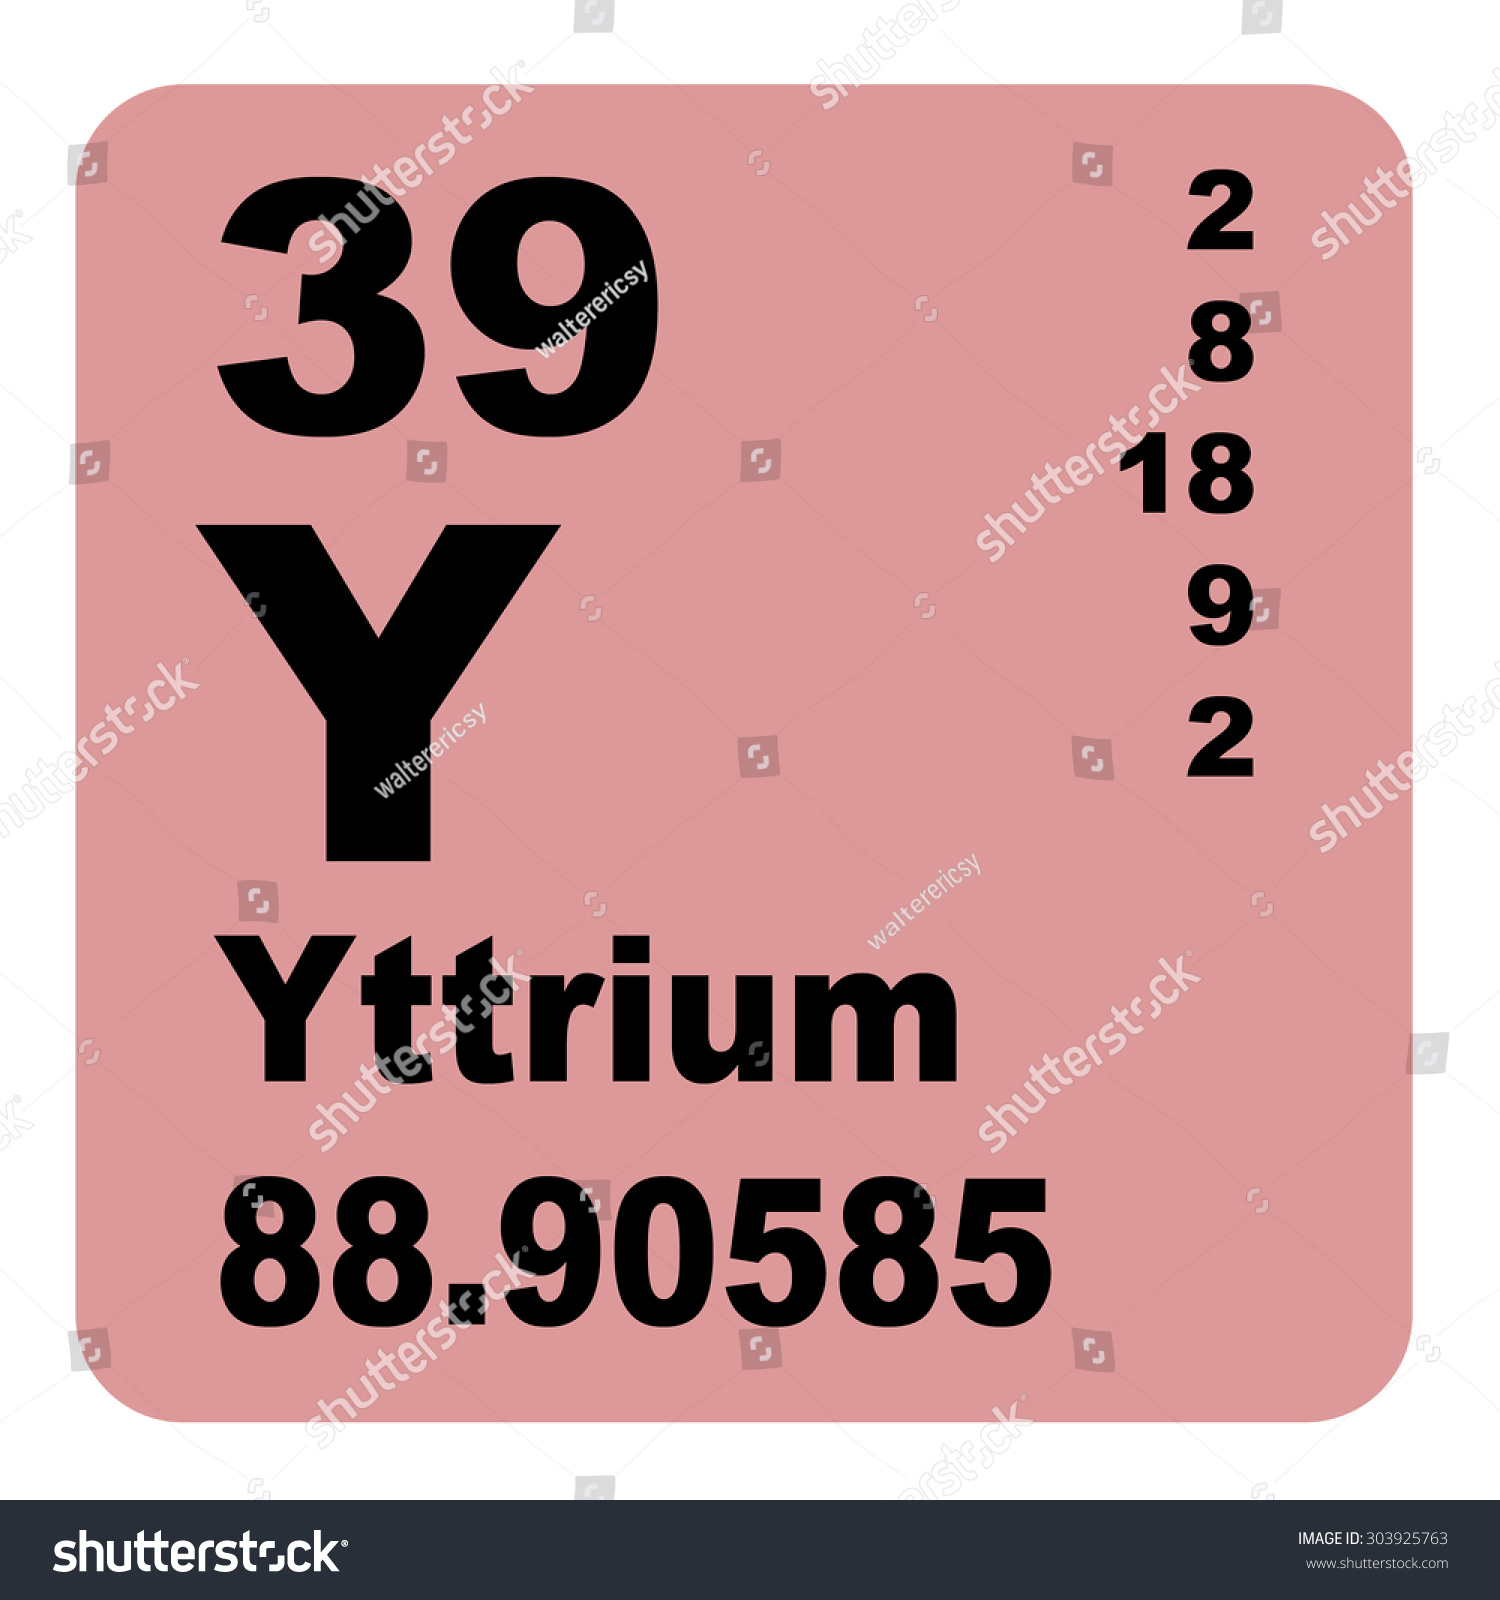 Yttrium periodic table elements stock illustration 303925763 yttrium periodic table elements stock illustration 303925763 shutterstock urtaz Images